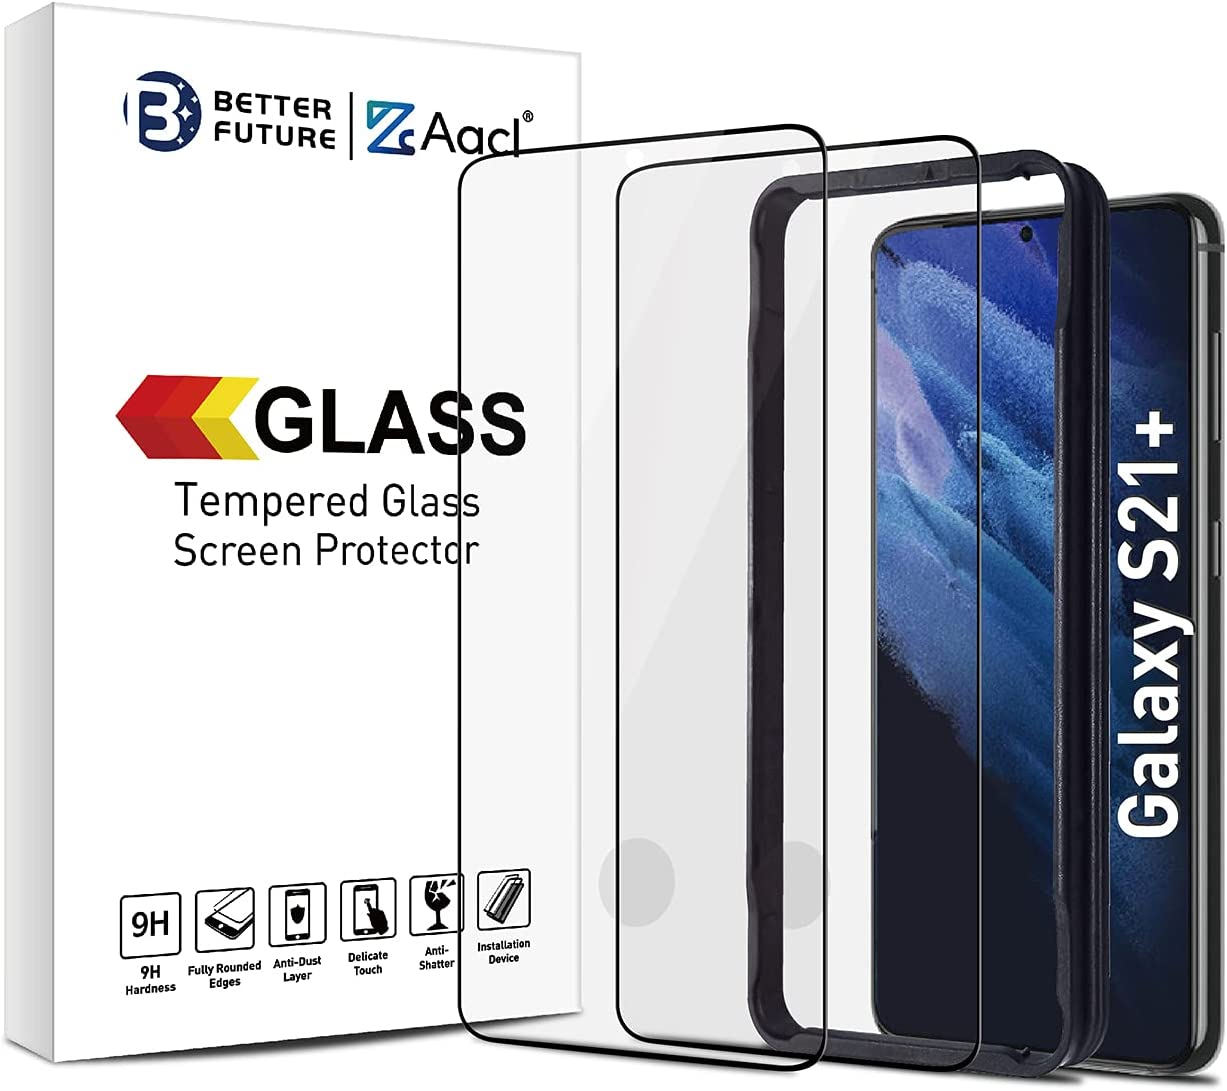 Screen Protector for Samsung Galaxy S21 Plus 5G,6.7 Inch,Tempered Glass Film,Compatible with Ultrasonic Fingerprint Scanner,2 Pack,Black